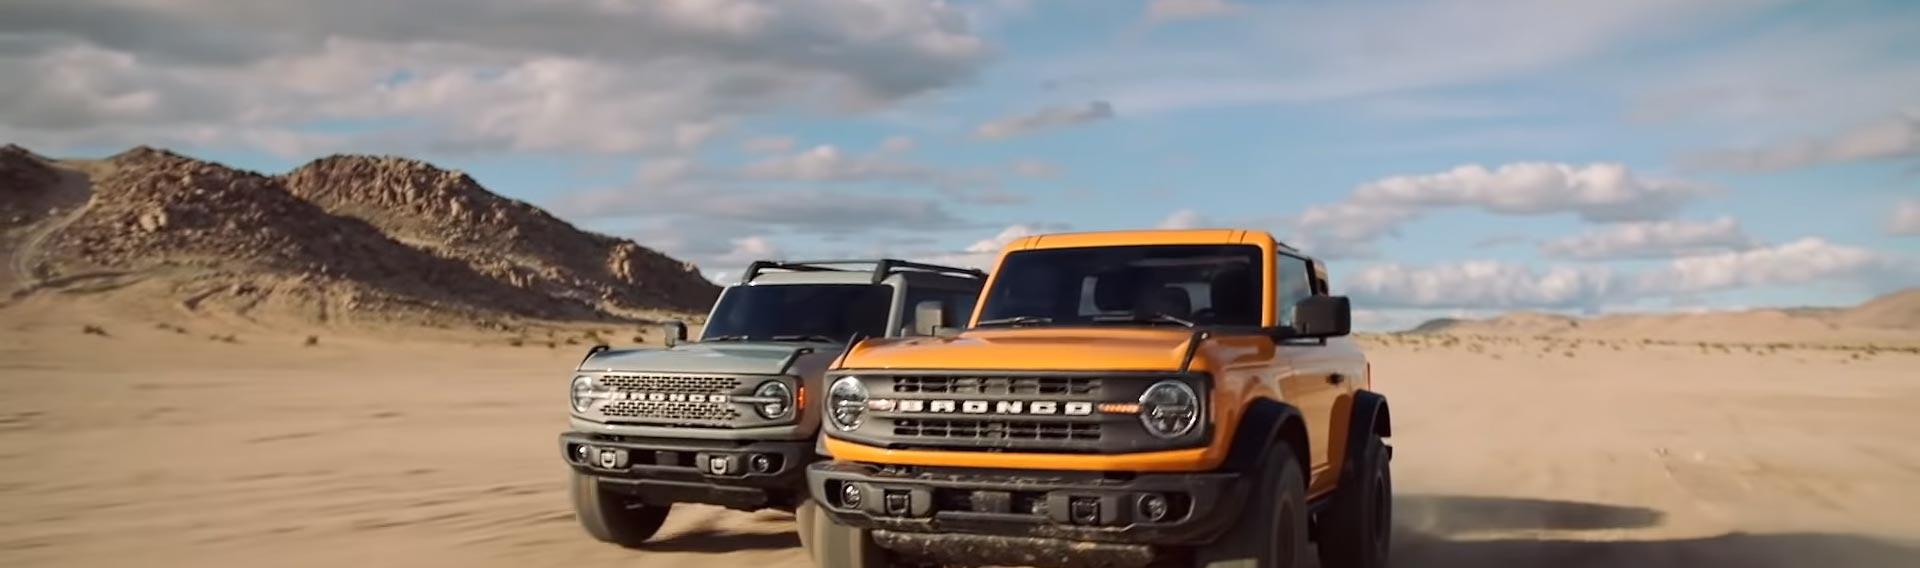 Your 2021 Ford Bronco Order is In. Now What?